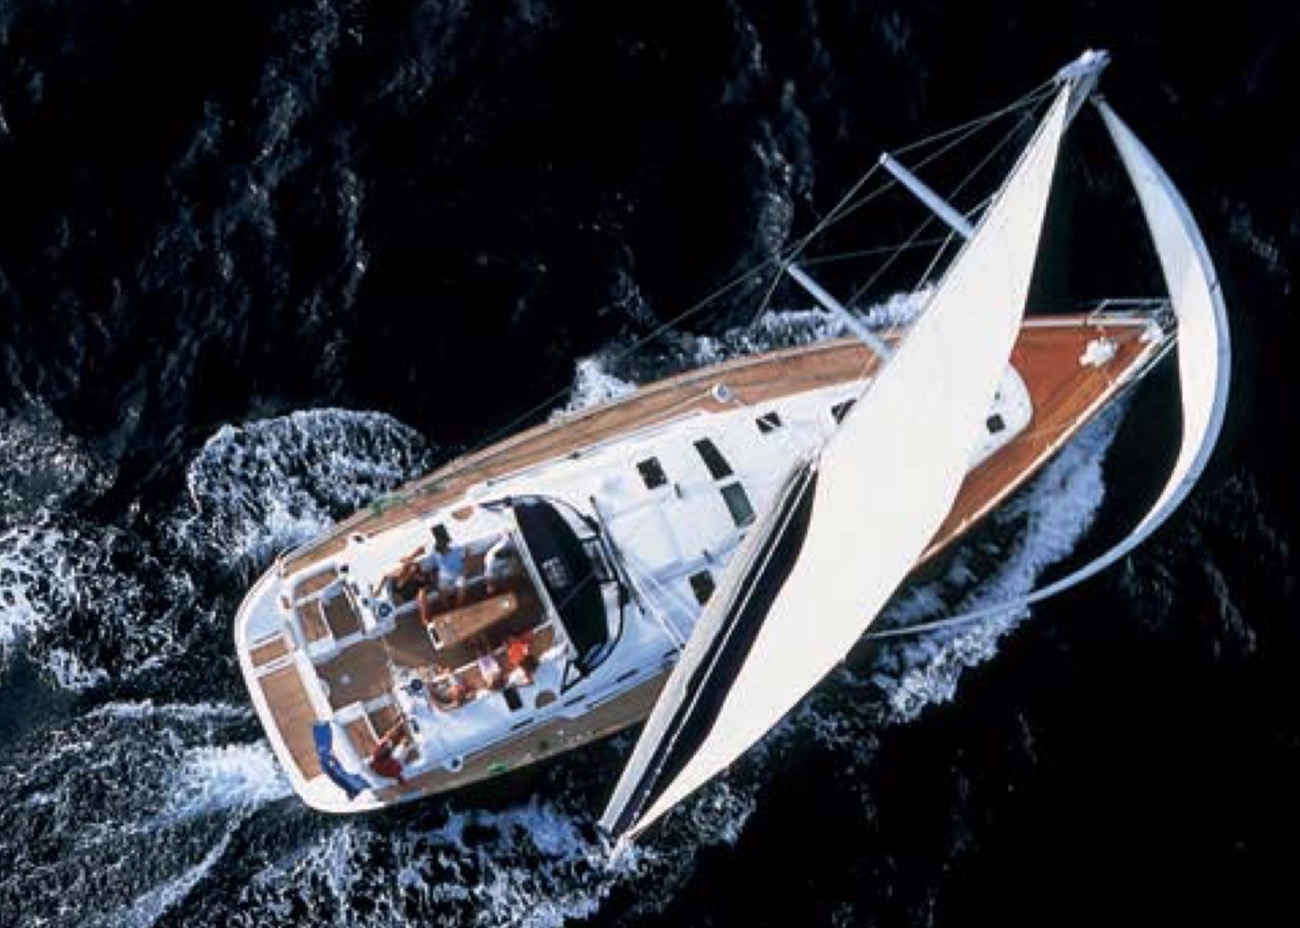 Oceanis Clipper 523 de